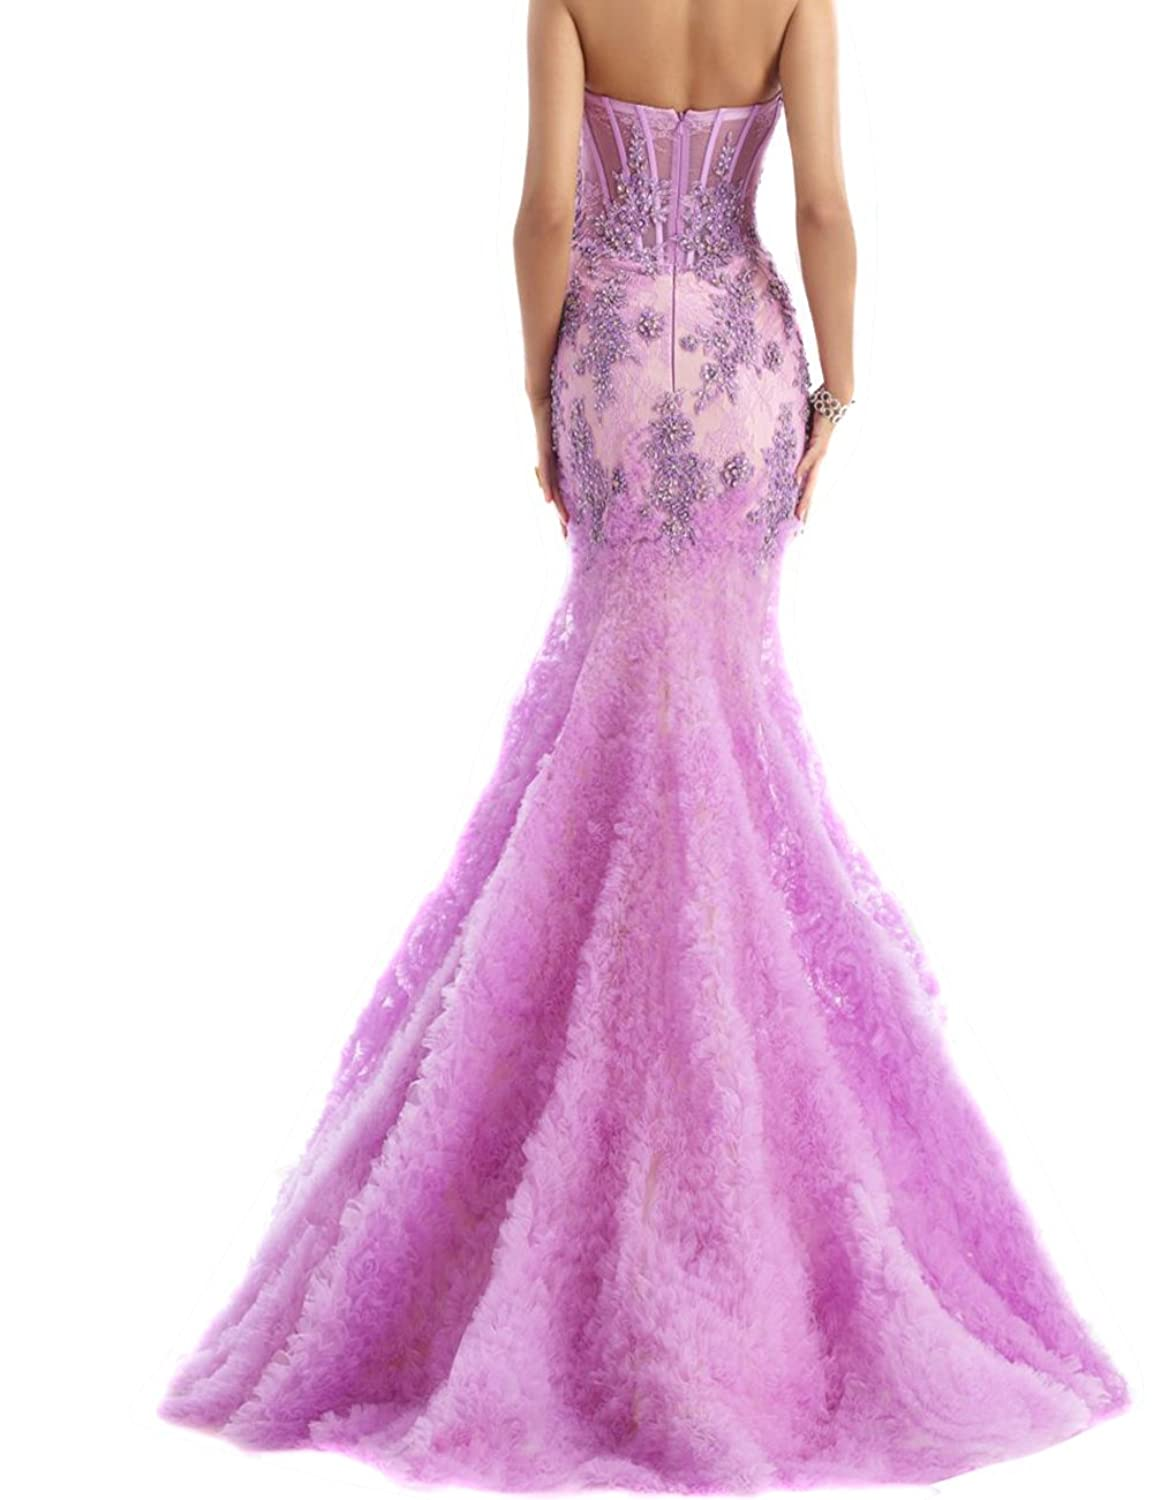 Fanciest Women's Appliques Sheer Sexy Mermaid Prom Dresses Long Evening Formal Gowns